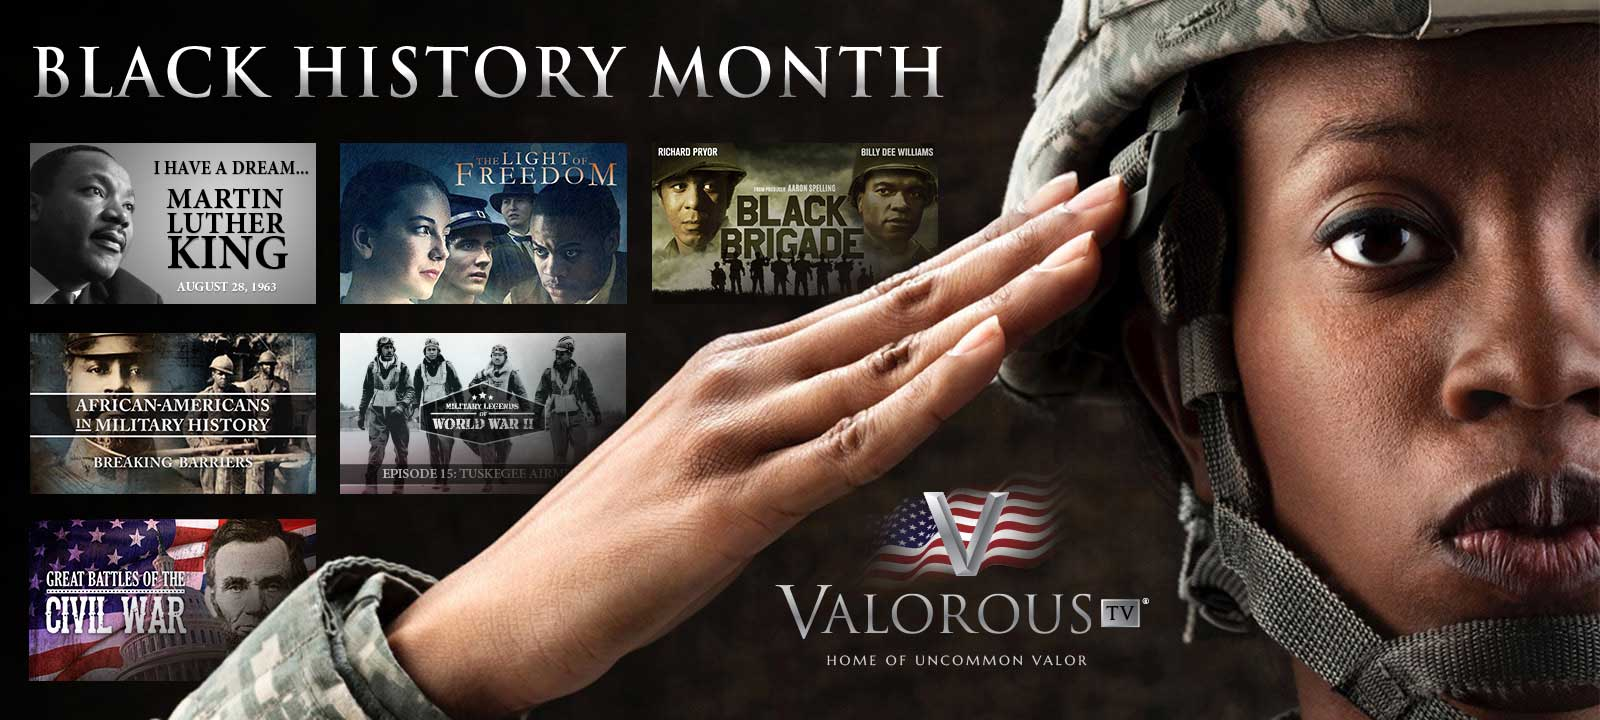 Valorous TV Celebrates Black History Month